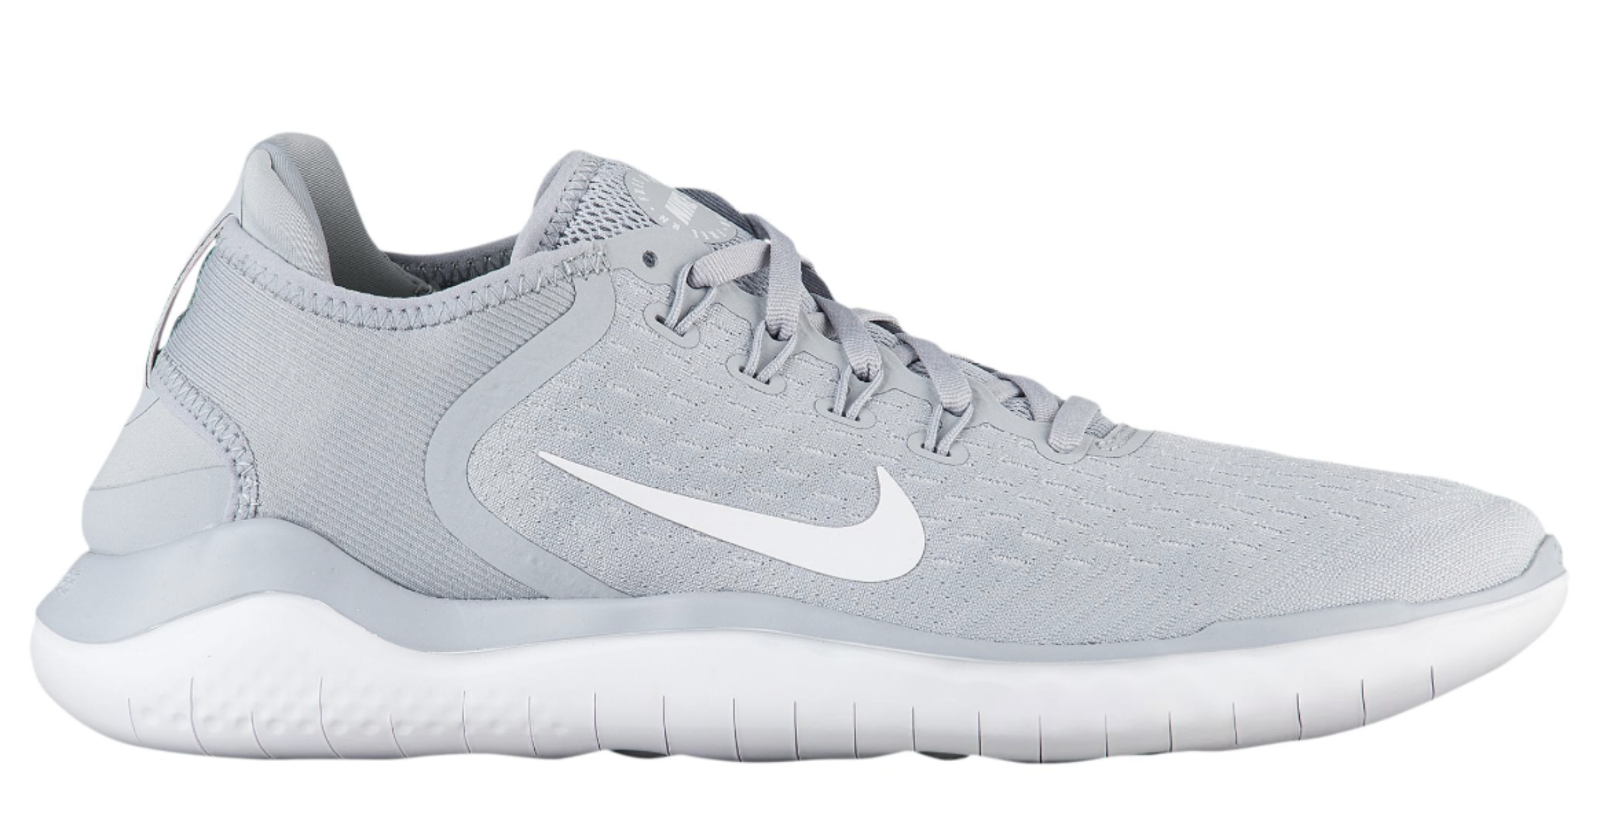 New NIKE FREE RN Wolf 2018 42836-003 - homme Wolf RN  Gris /blanc fonctionnement chaussures c1 716937